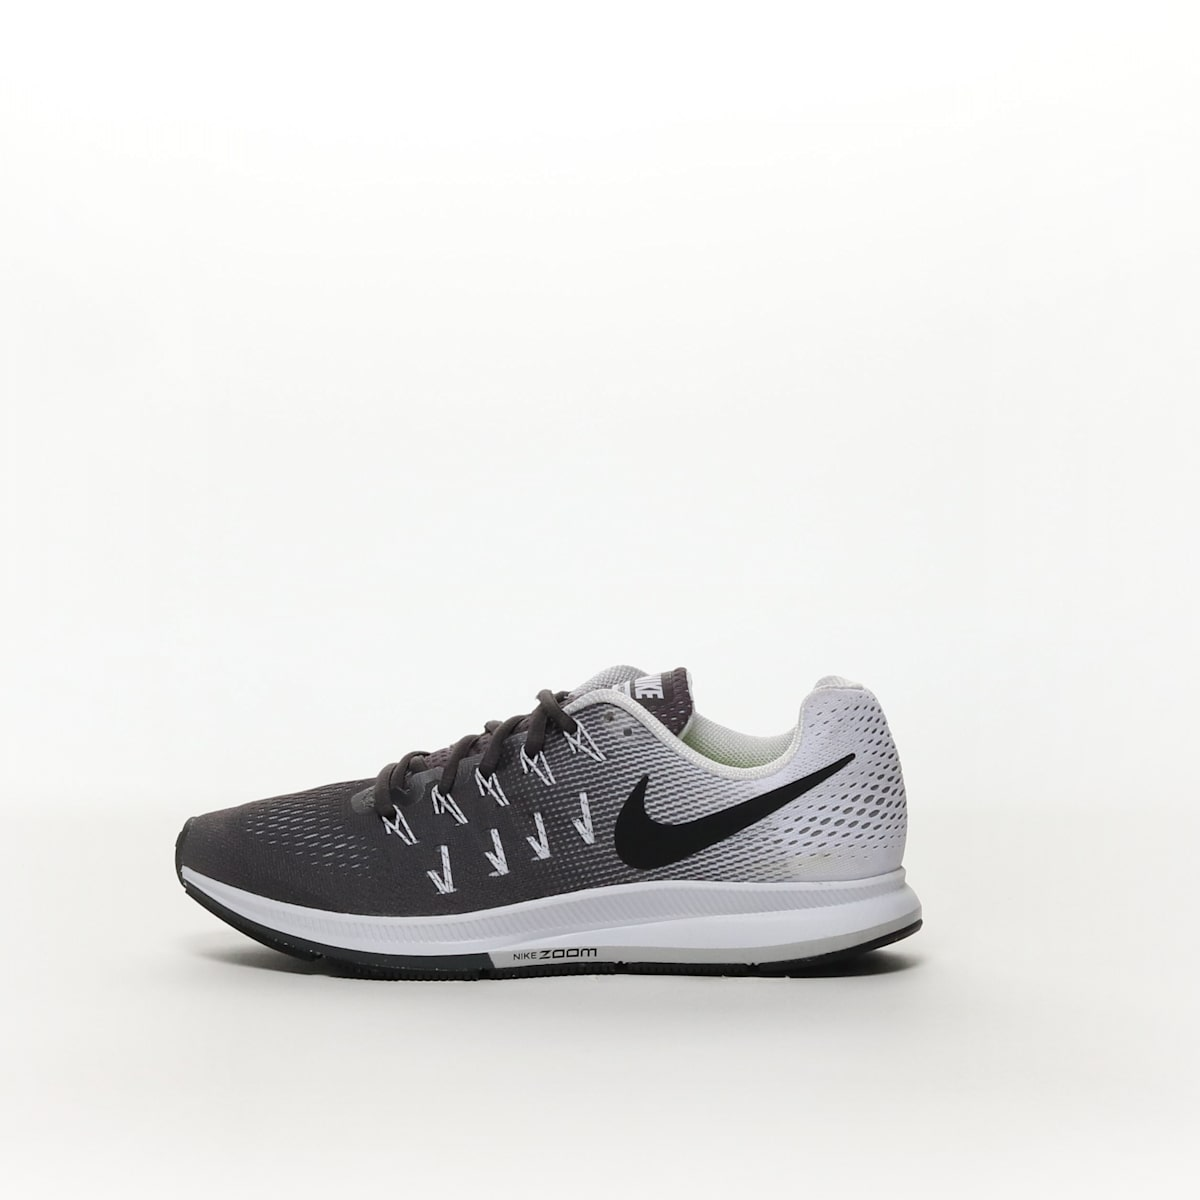 f622f89d0d18d Men s Nike Air Zoom Pegasus 33 Running Shoe - DARK GREY BLACK-WHITE ...